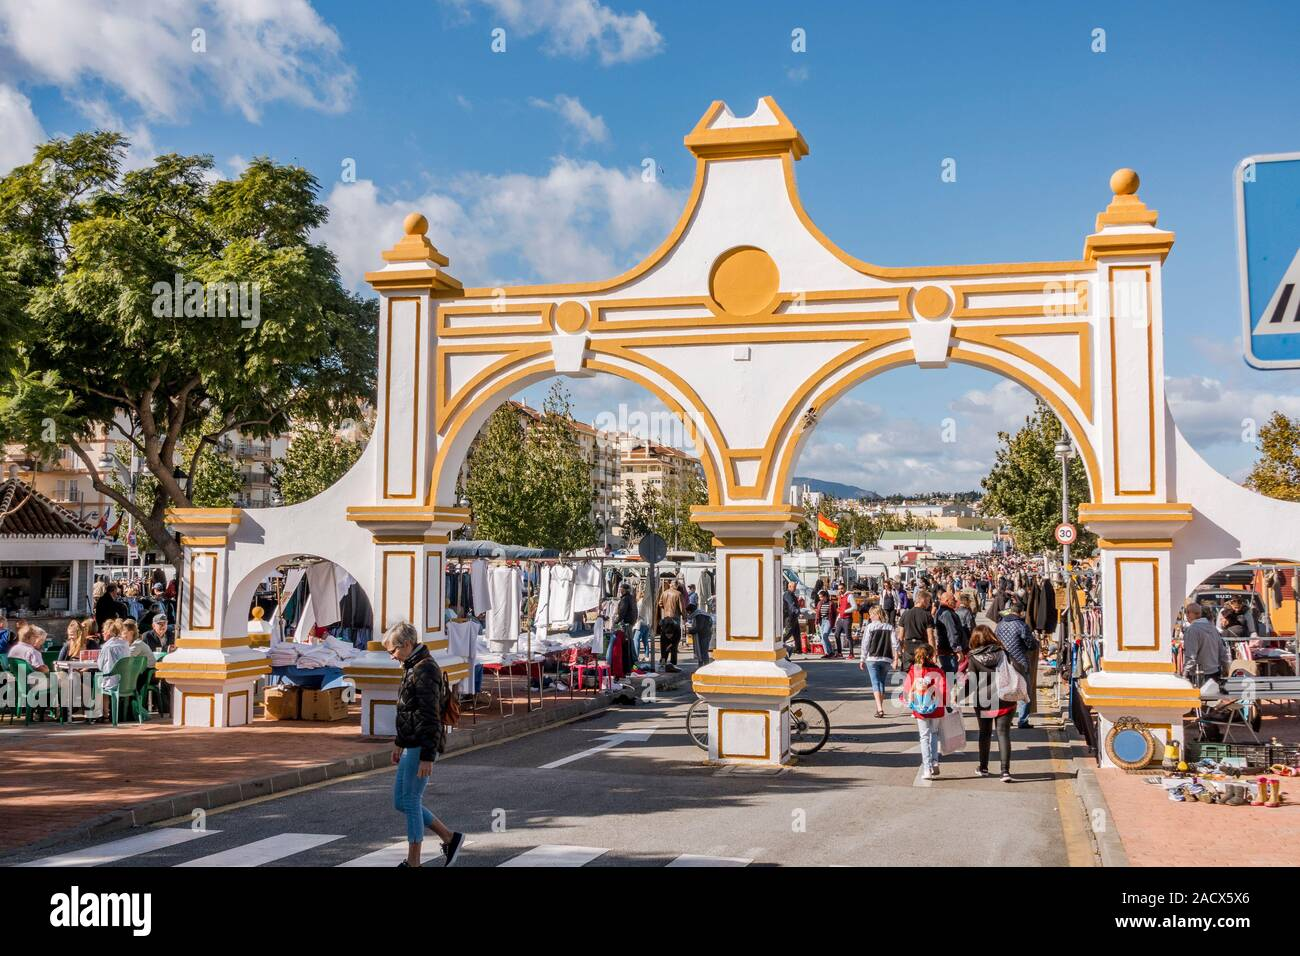 Fuengirola, Spain. Stall and people strolling on weekly Flea Market, second hand market in Fuengirola, Costa del sol, Spain. Stock Photo